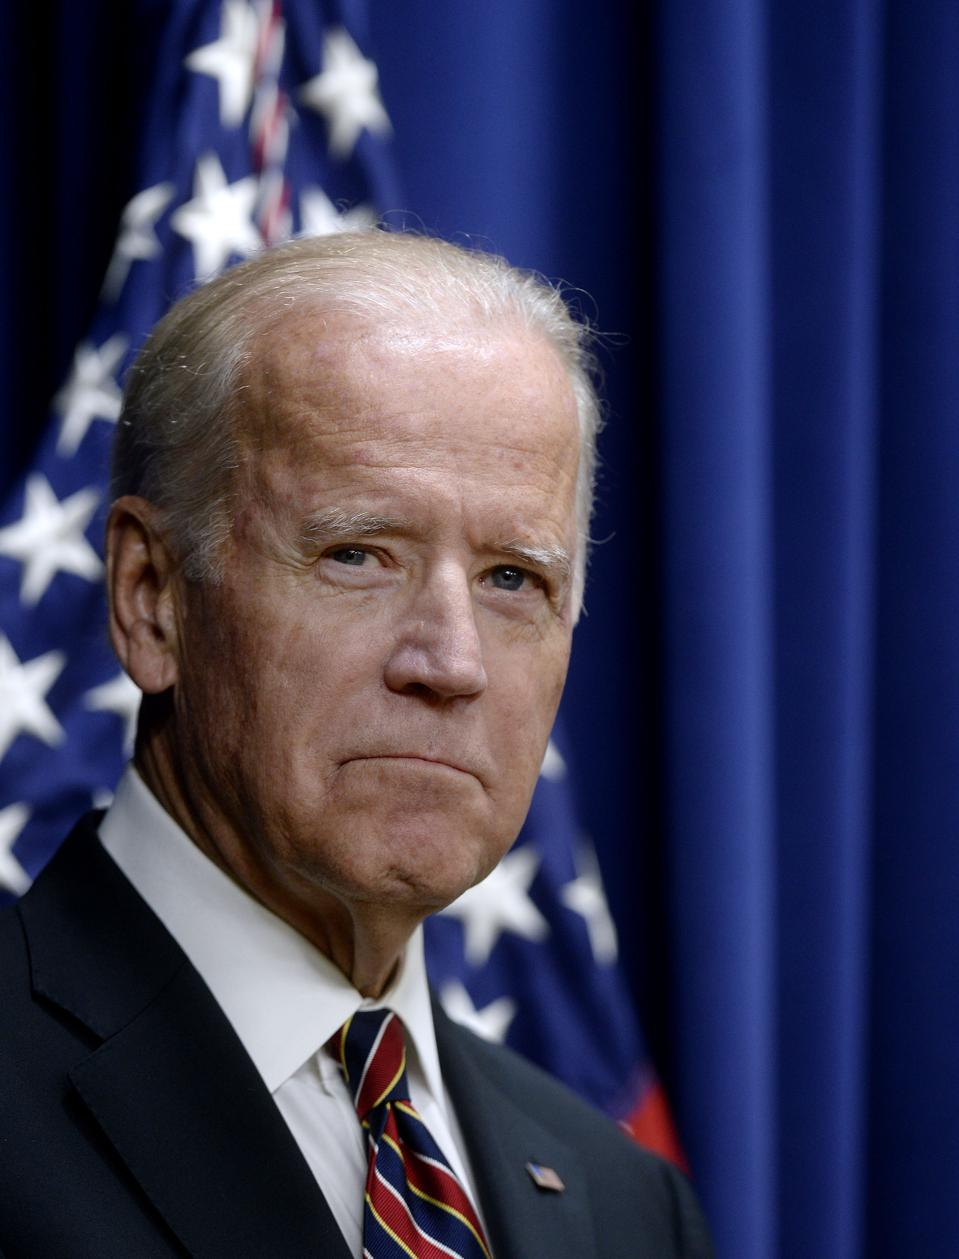 Will The Biden Administration Transform U.S. Climate Policy?